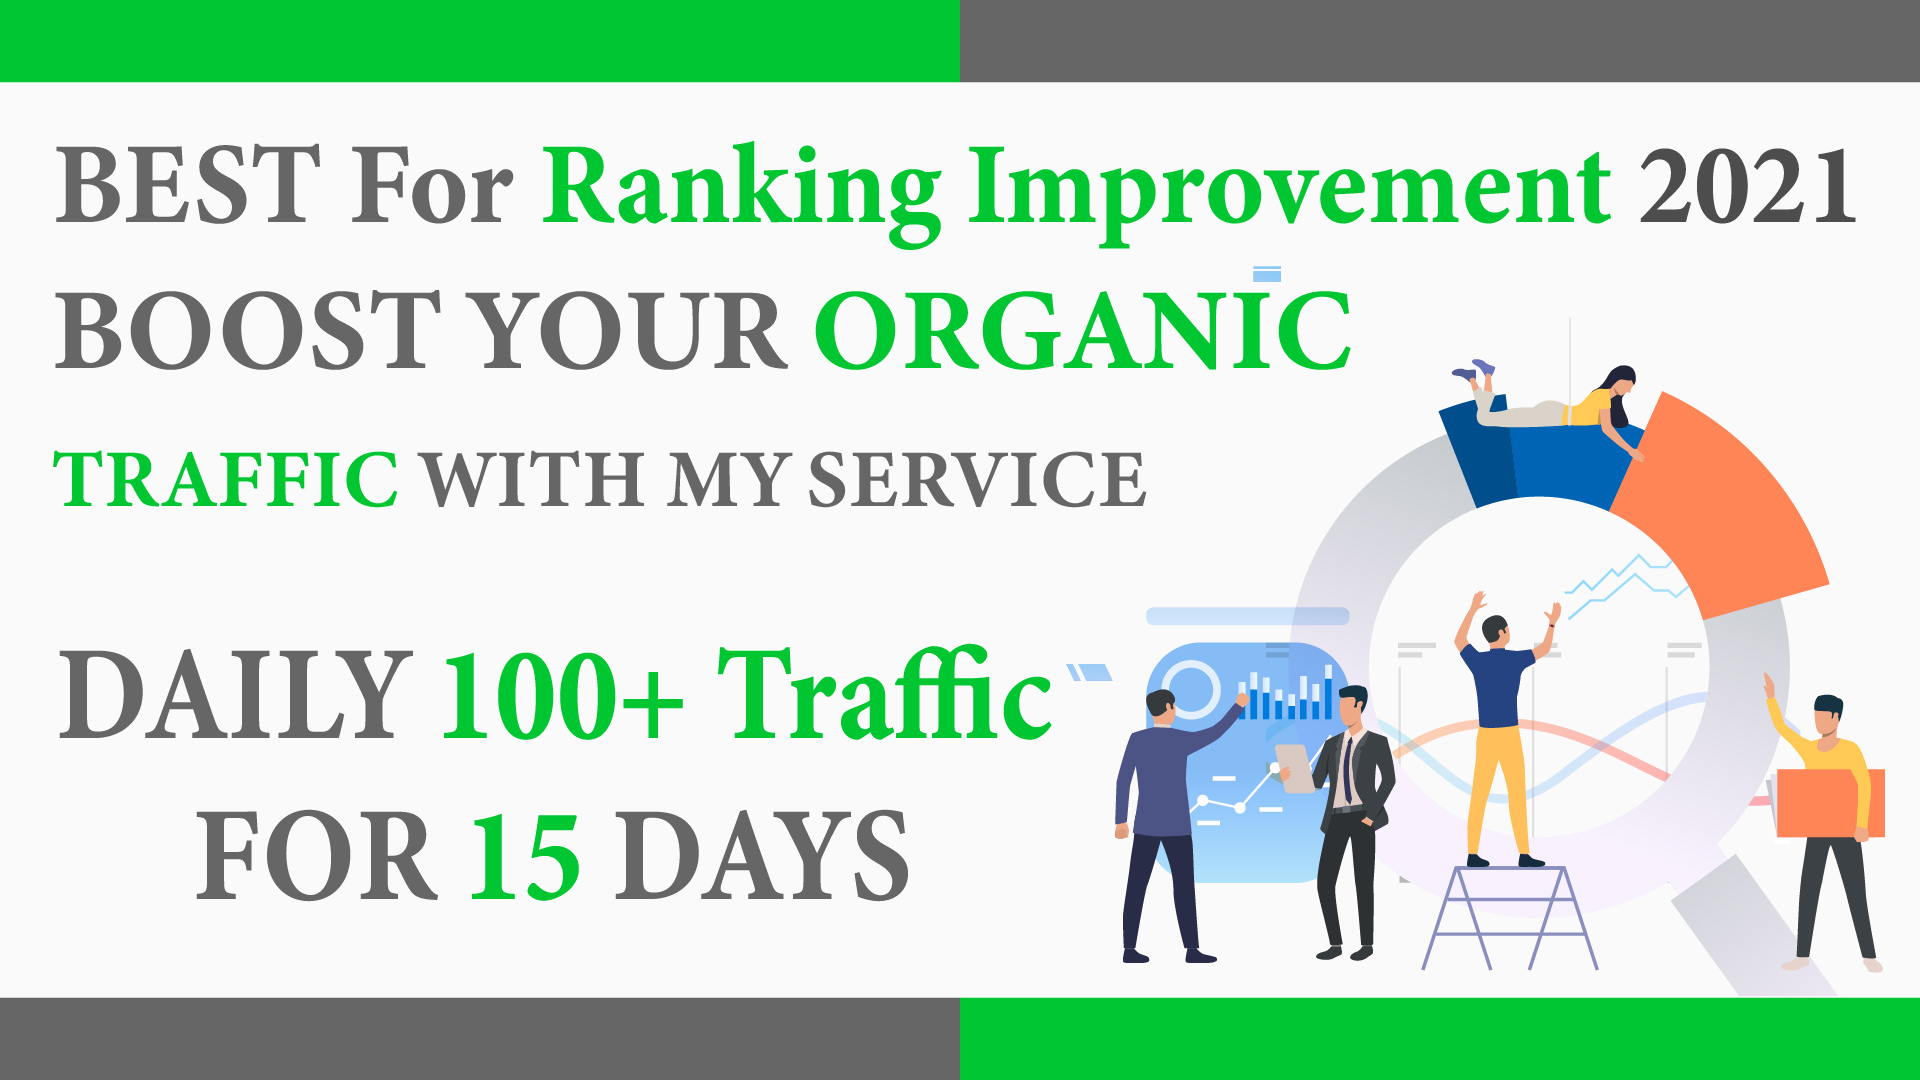 Daily 100+ Organic traffic for 15 Days - Best for ranking Improvement